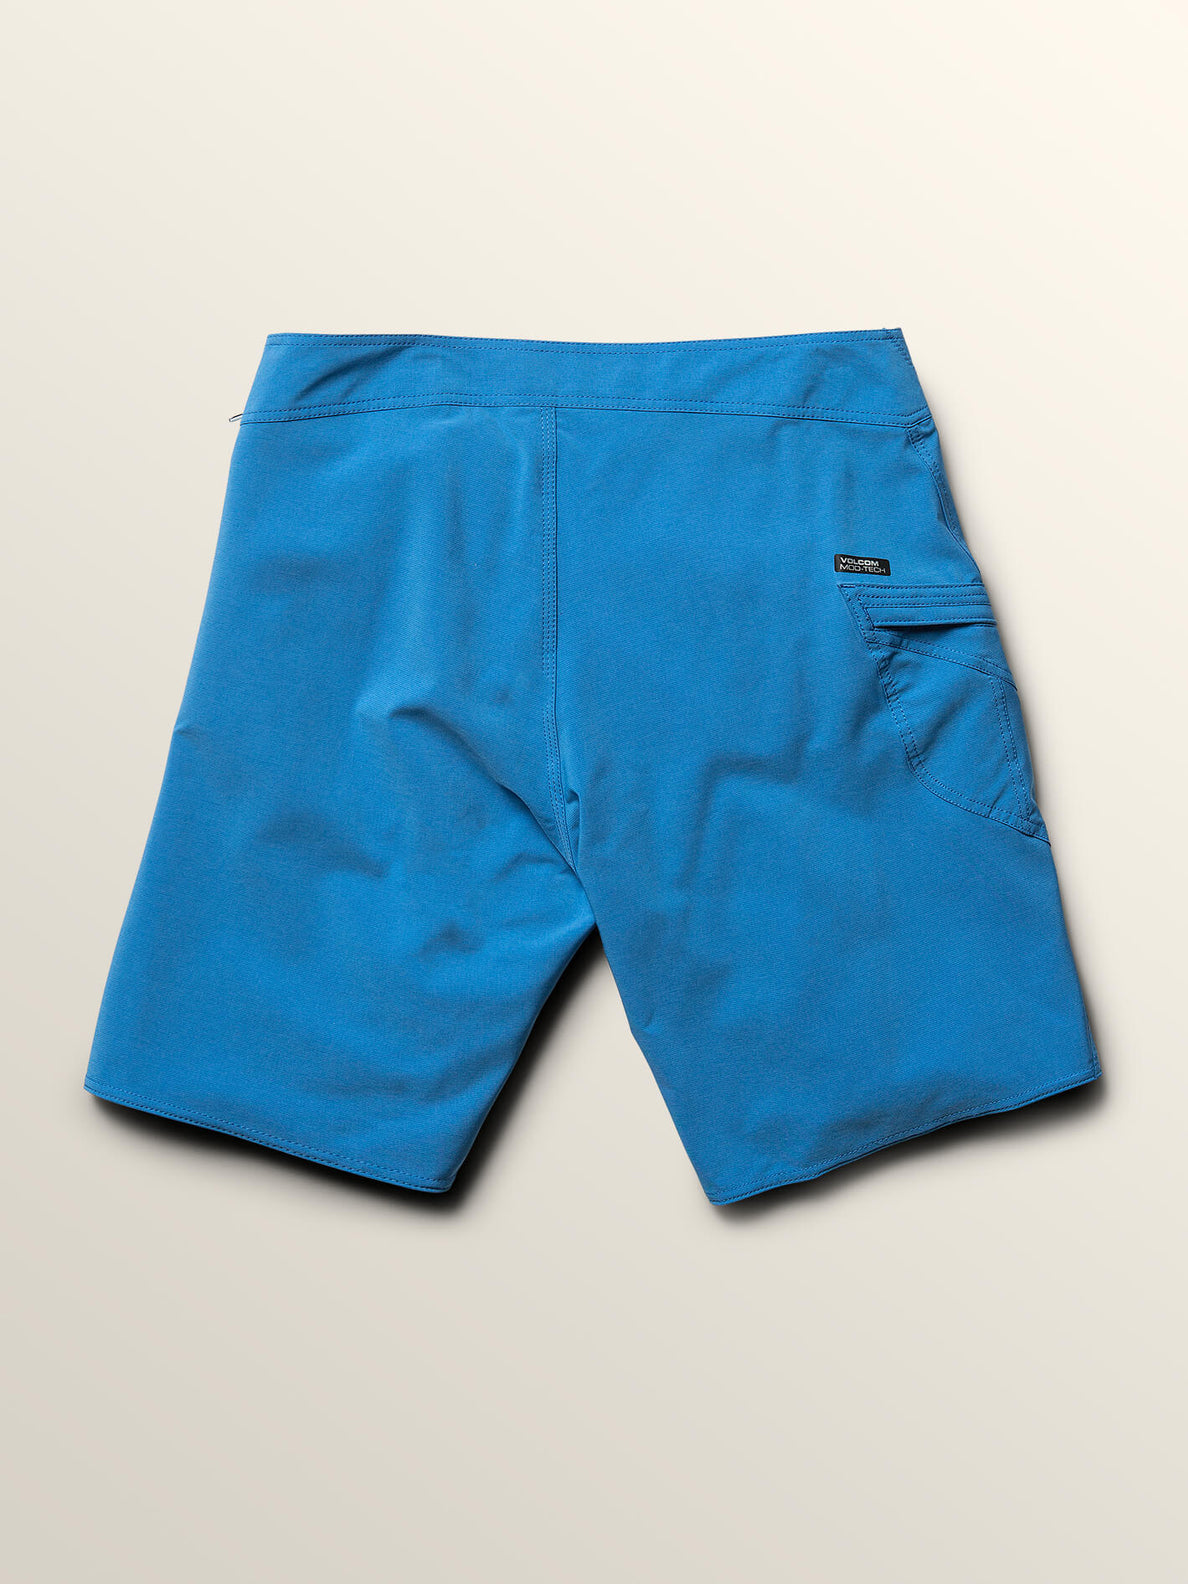 Lido Solid Mod Boardshorts In Free Blue, Fourth Alternate View